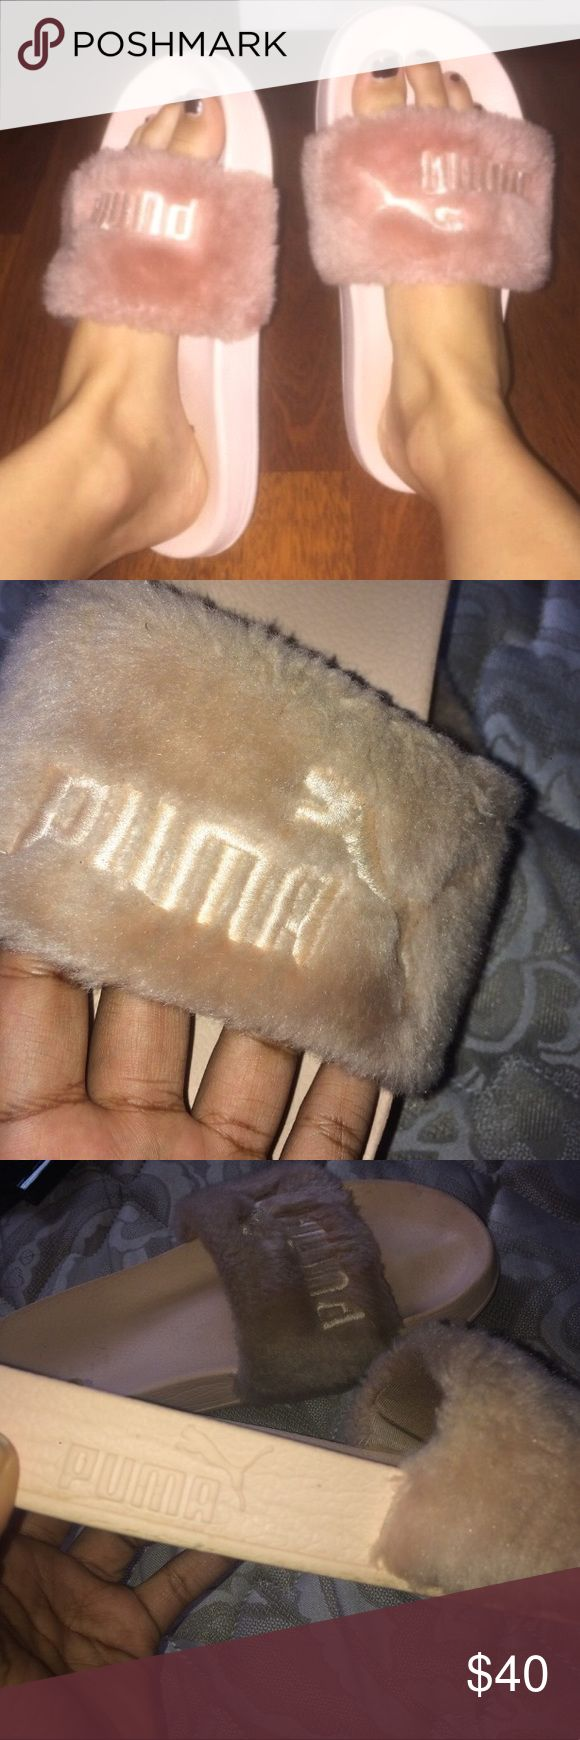 PINK FENTY PUMA SLIDES  BY RIHANNA Couldn't bring my self to sale these I love them so much, being why they are posted so much in my closet but now I've decided to finally let them go  super cute and super comfy slides, wording had faded on one of the slippers, they are a little dirty but can be cleaned ❤️ Puma Shoes Slippers